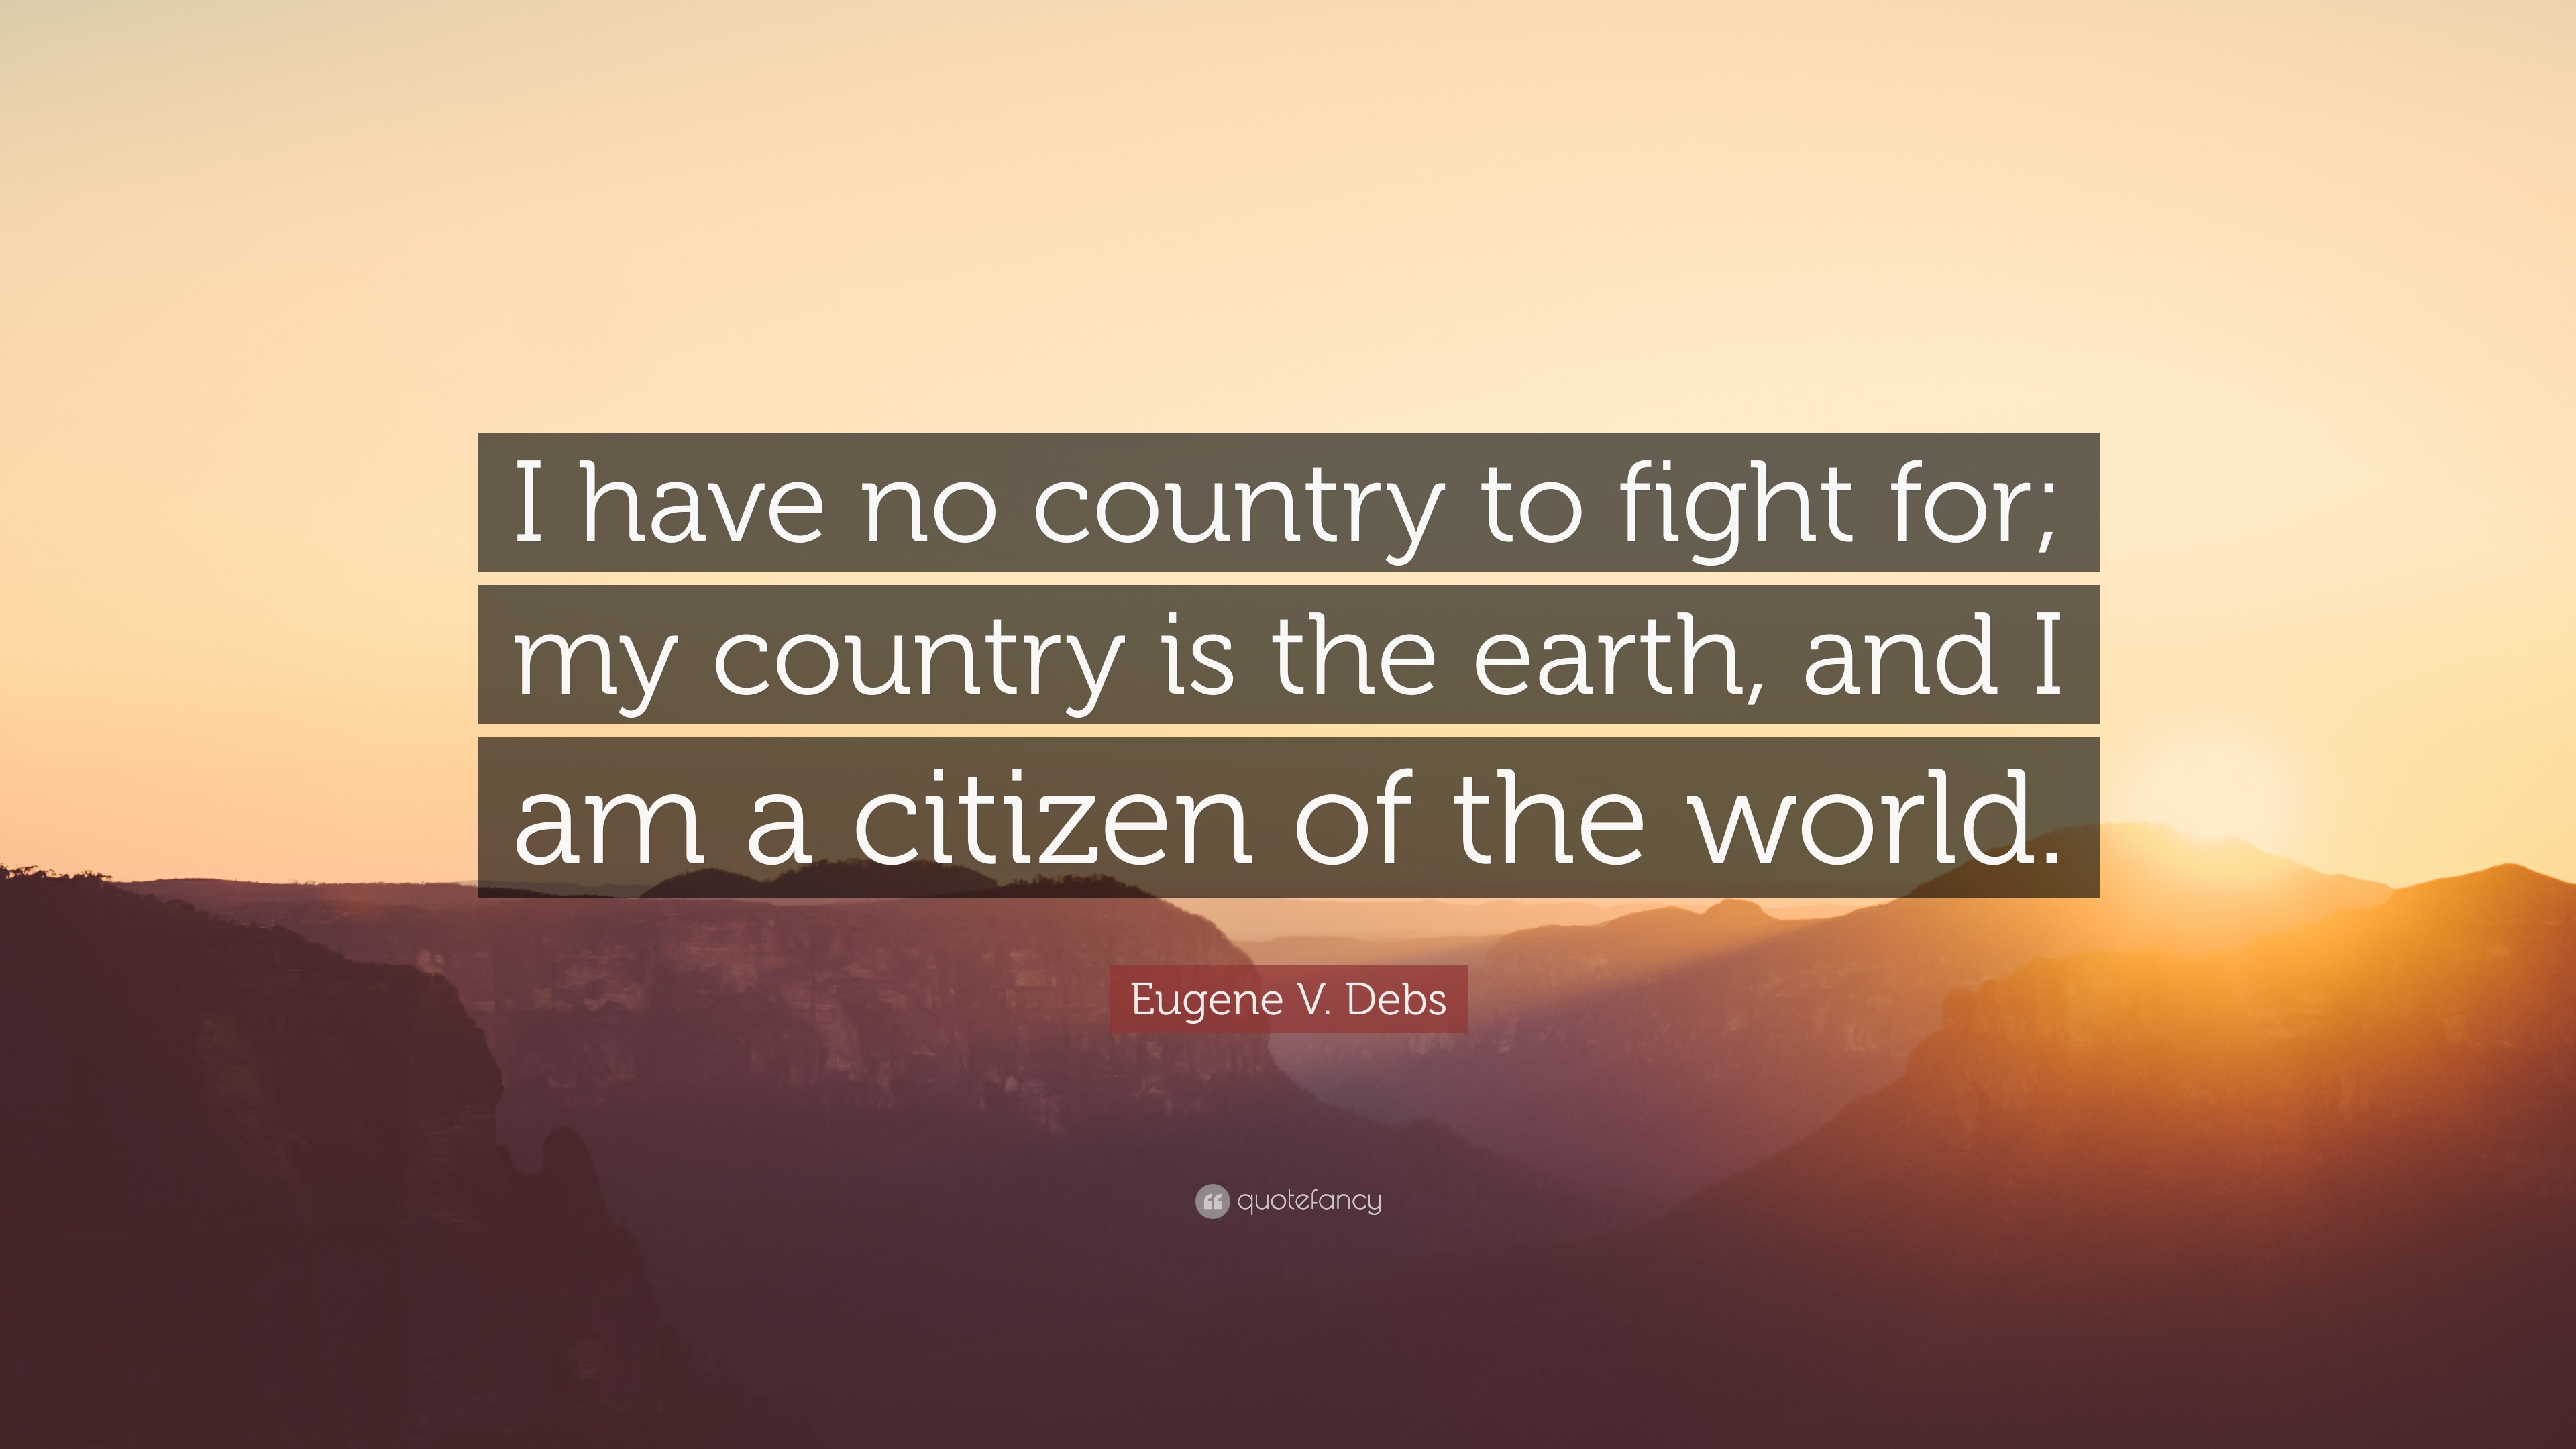 I am a citizen of another country (I live in Russia). The teacher said that I must learn the hymn. There is such a law in Russia 4